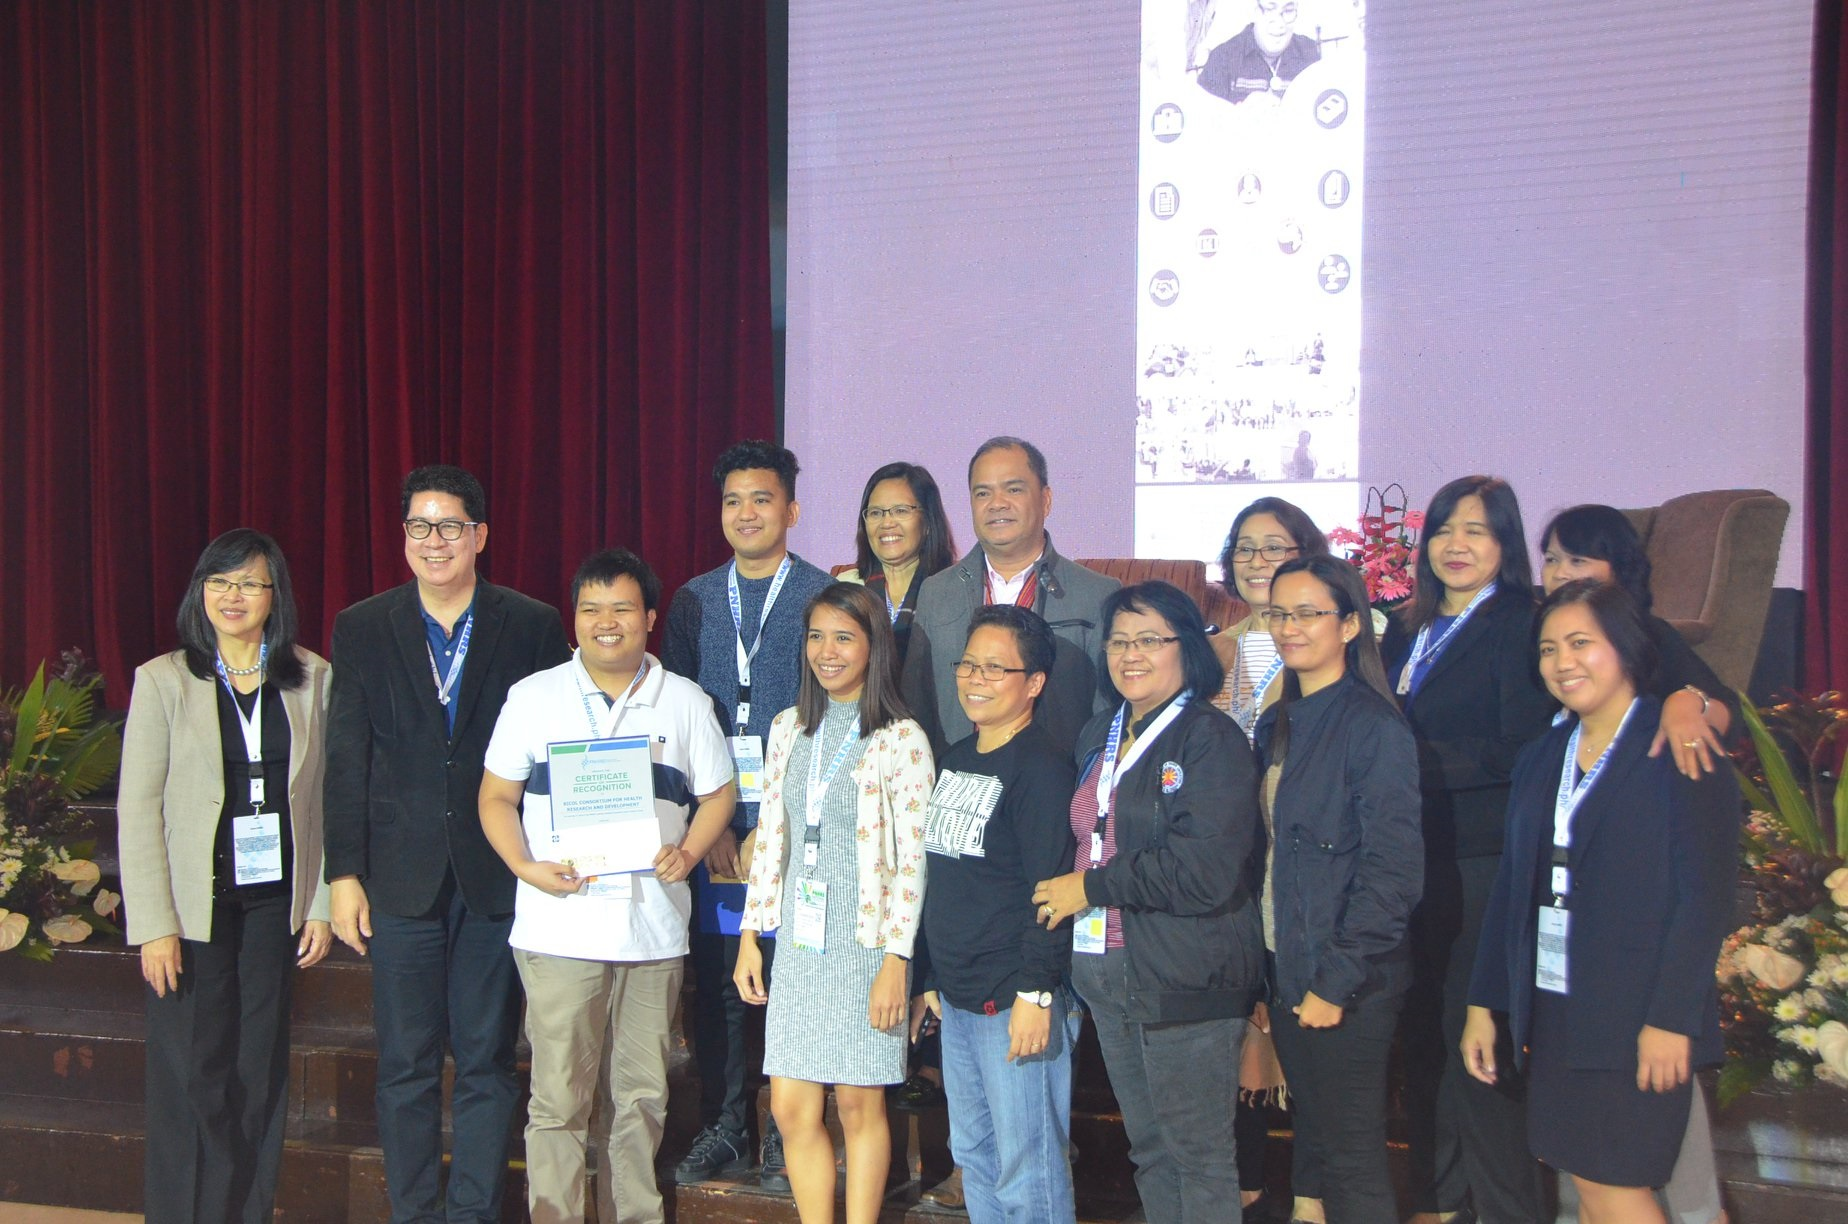 BCHRD bagged 2nd Place in Best Consortium Poster